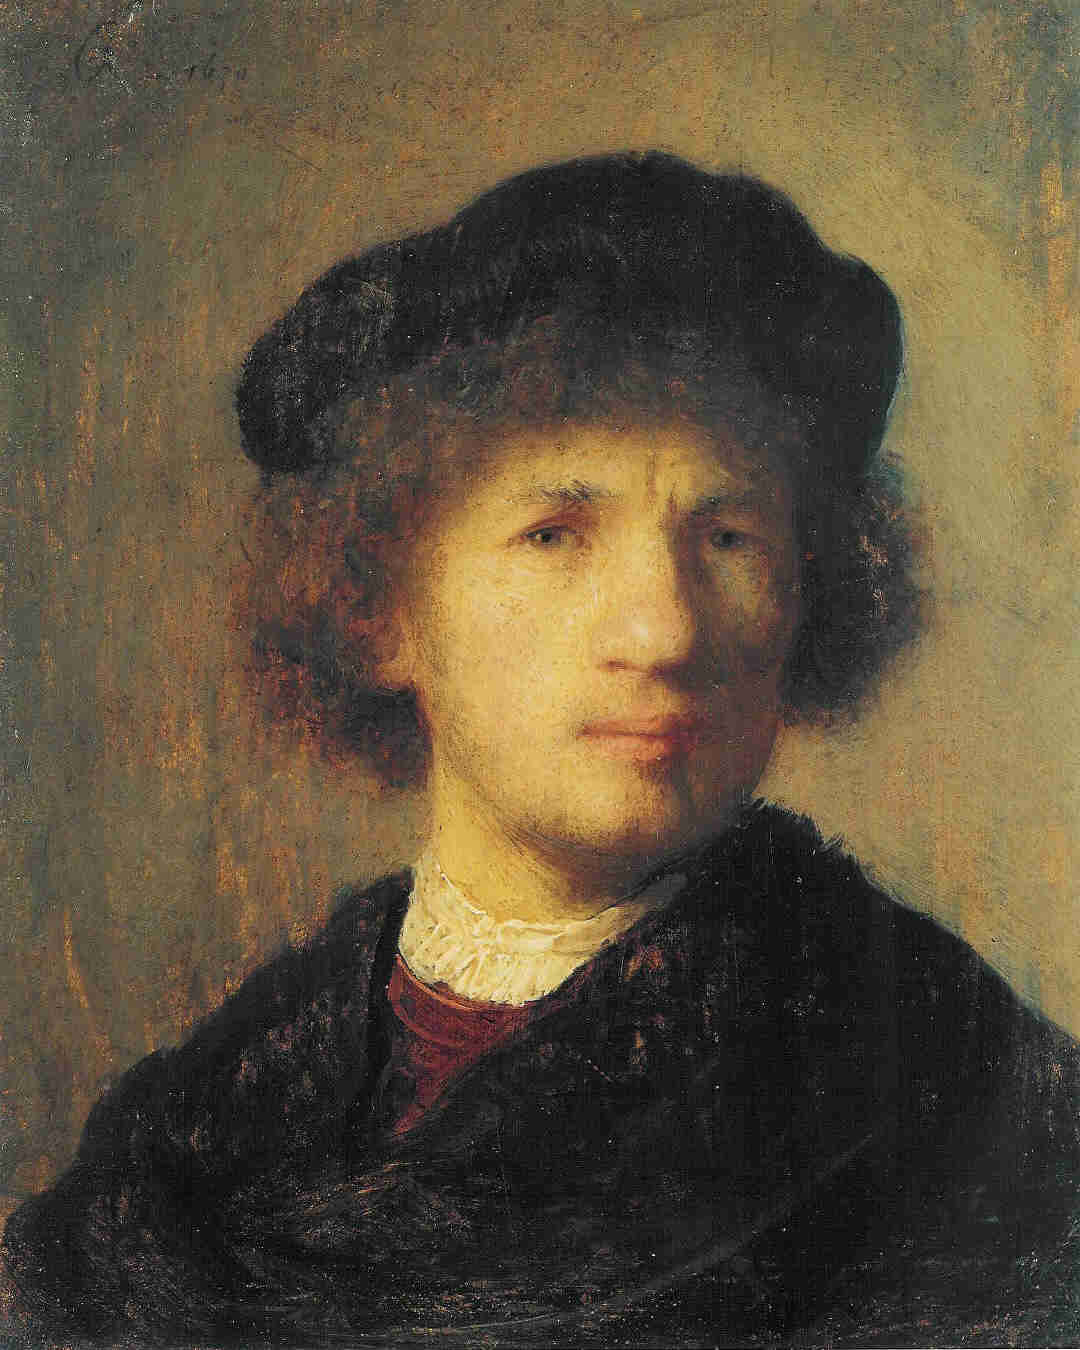 Self-Portrait (1630) by Rembrandt van Rijn, one of the works stolen in the 2000 robbery of Sweden's National Museum